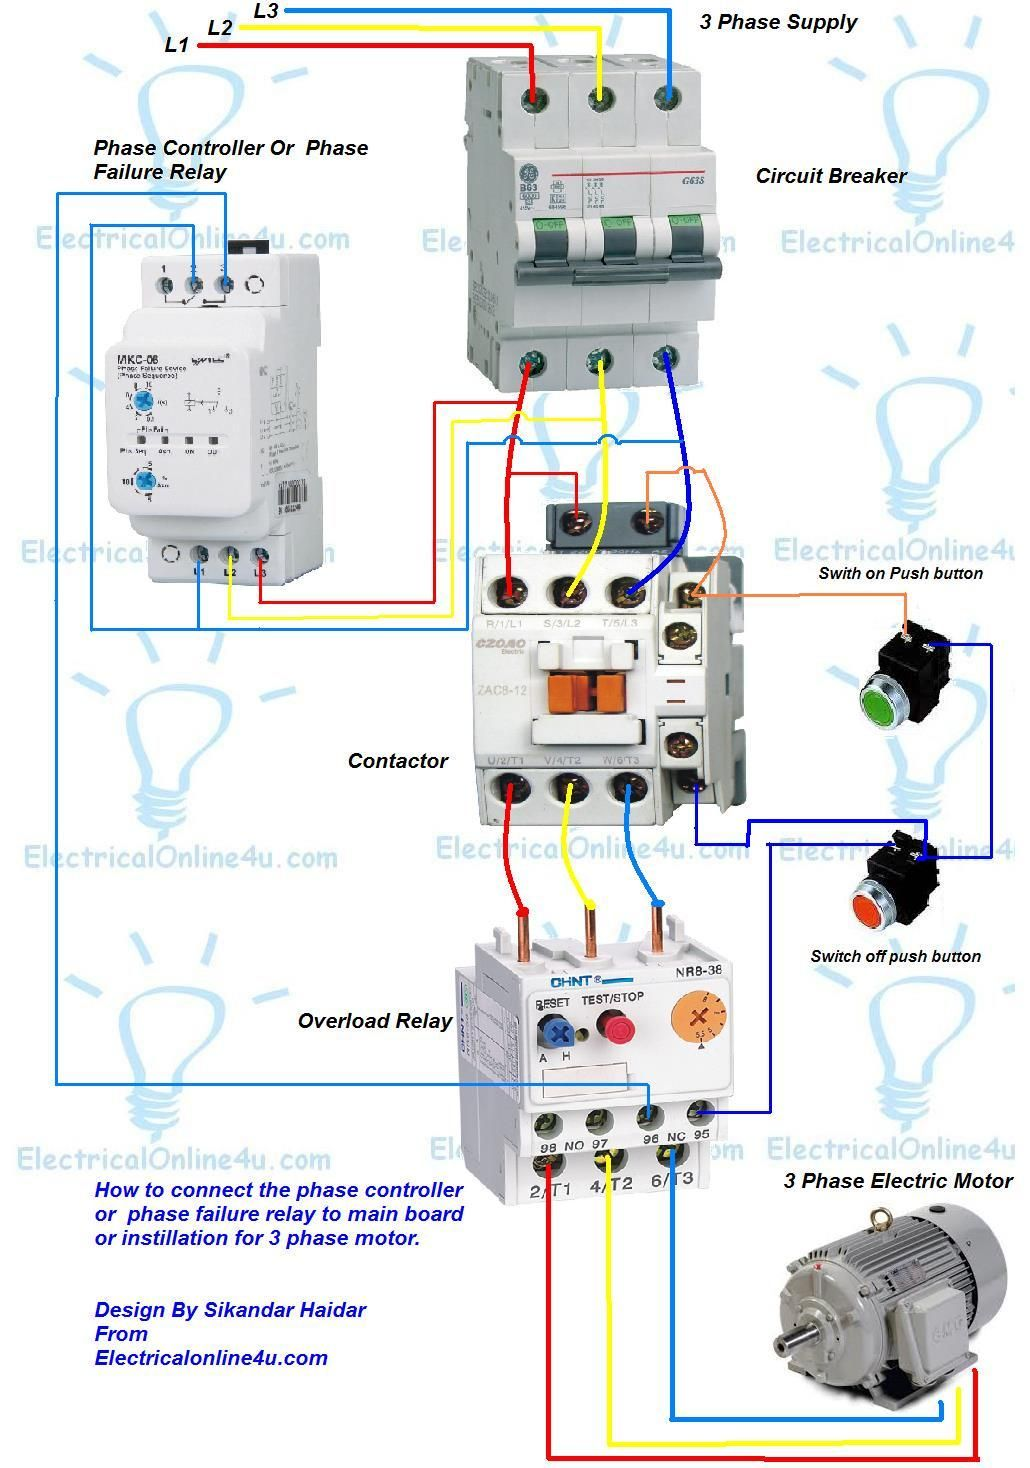 Phase Controller Wiring Failure Relay Diagram Di On Line Electrical Engineering Schematics